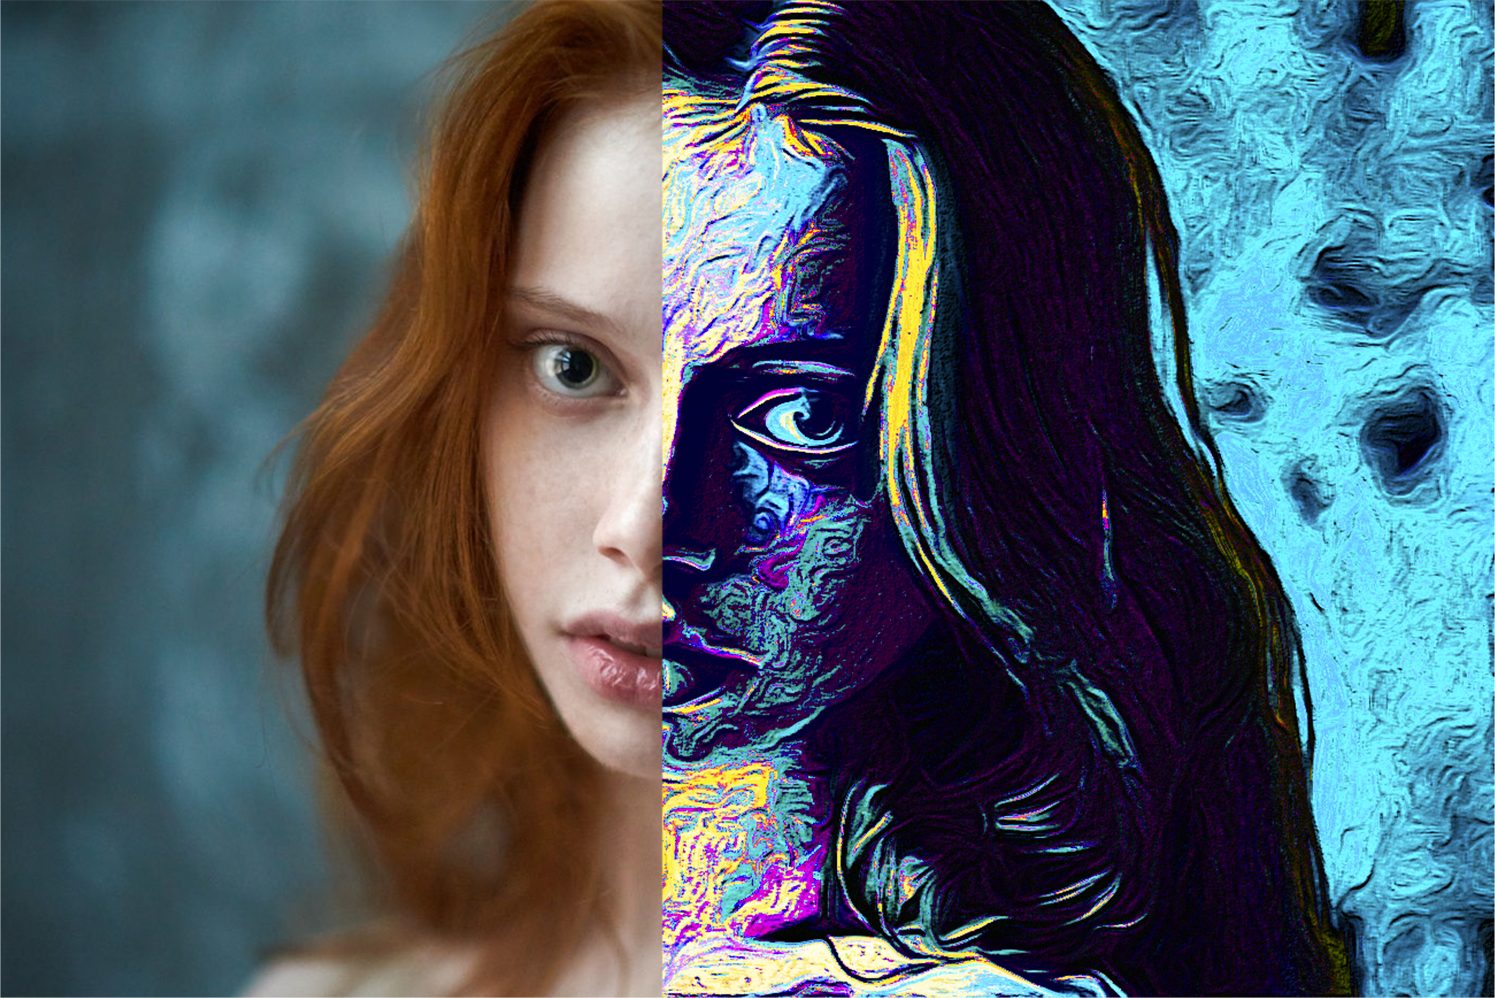 Realistic Digital Painting Effect 2.0 example image 10